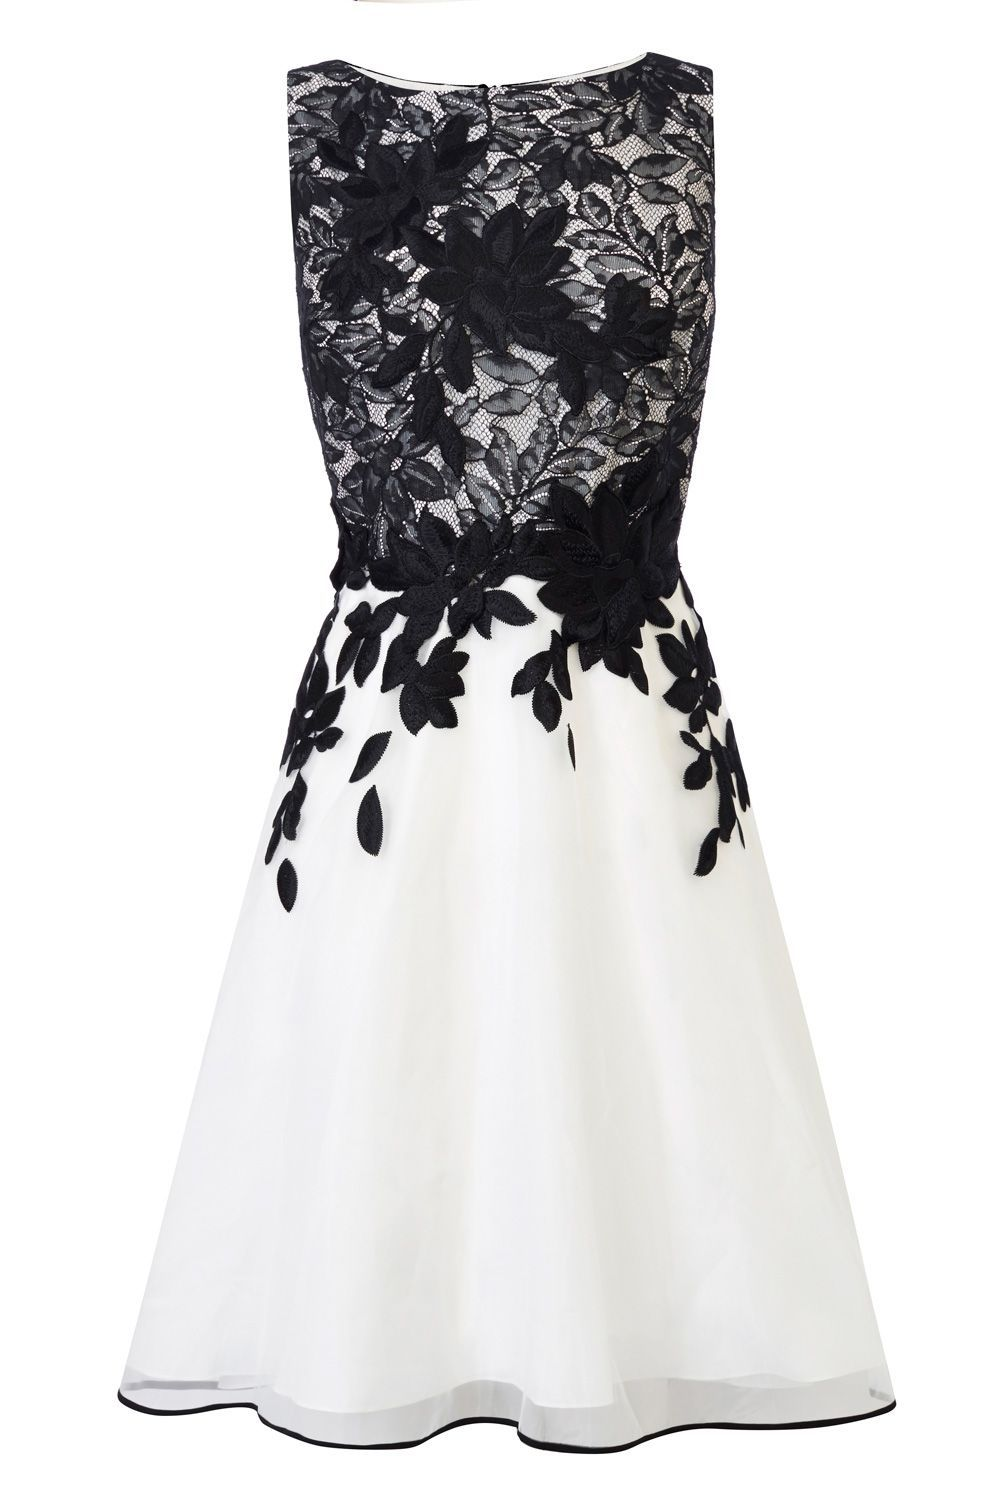 Black and white dresses for wedding guests  White Dresses  Shop Dresses  House of Fraser  Pretty Dresses